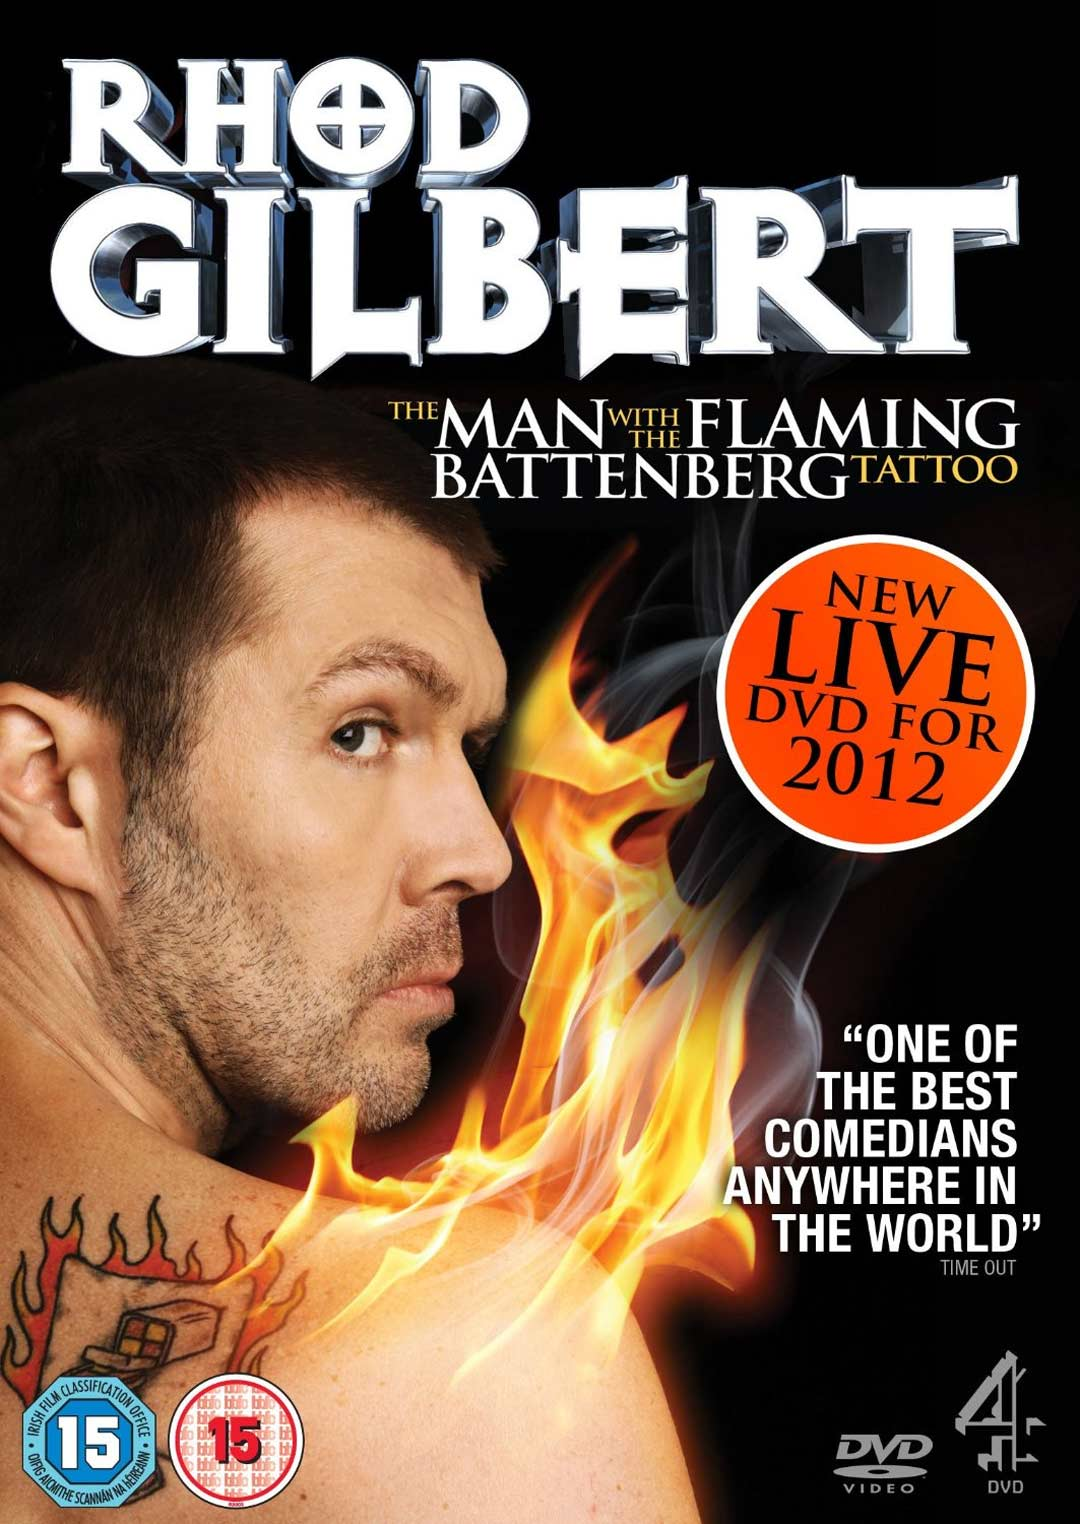 The Man with the Flaming Battenberg Tattoo DVD cover